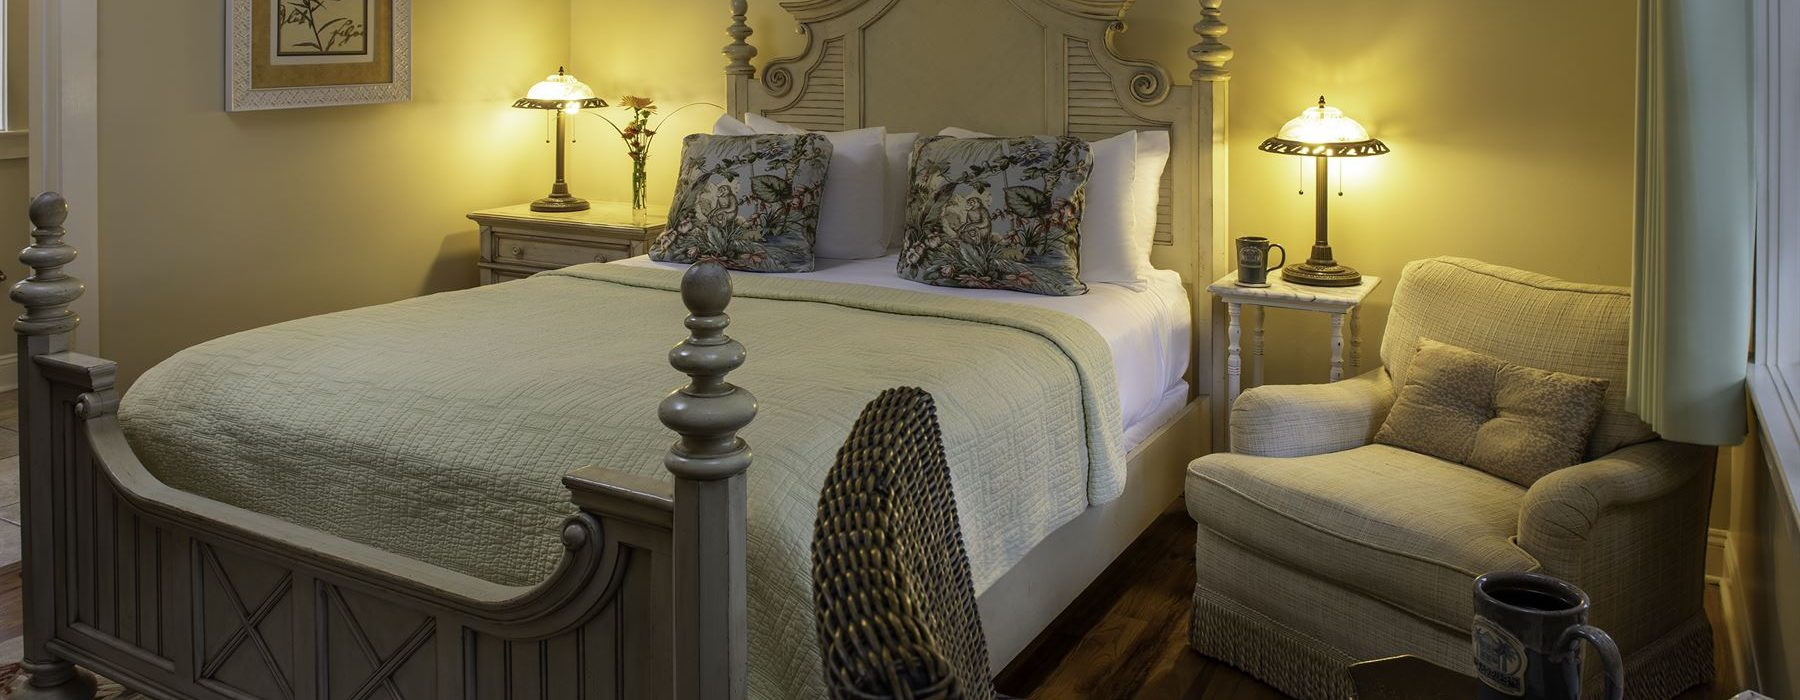 Room 15 at The Addison on Amelia Island - View of bed